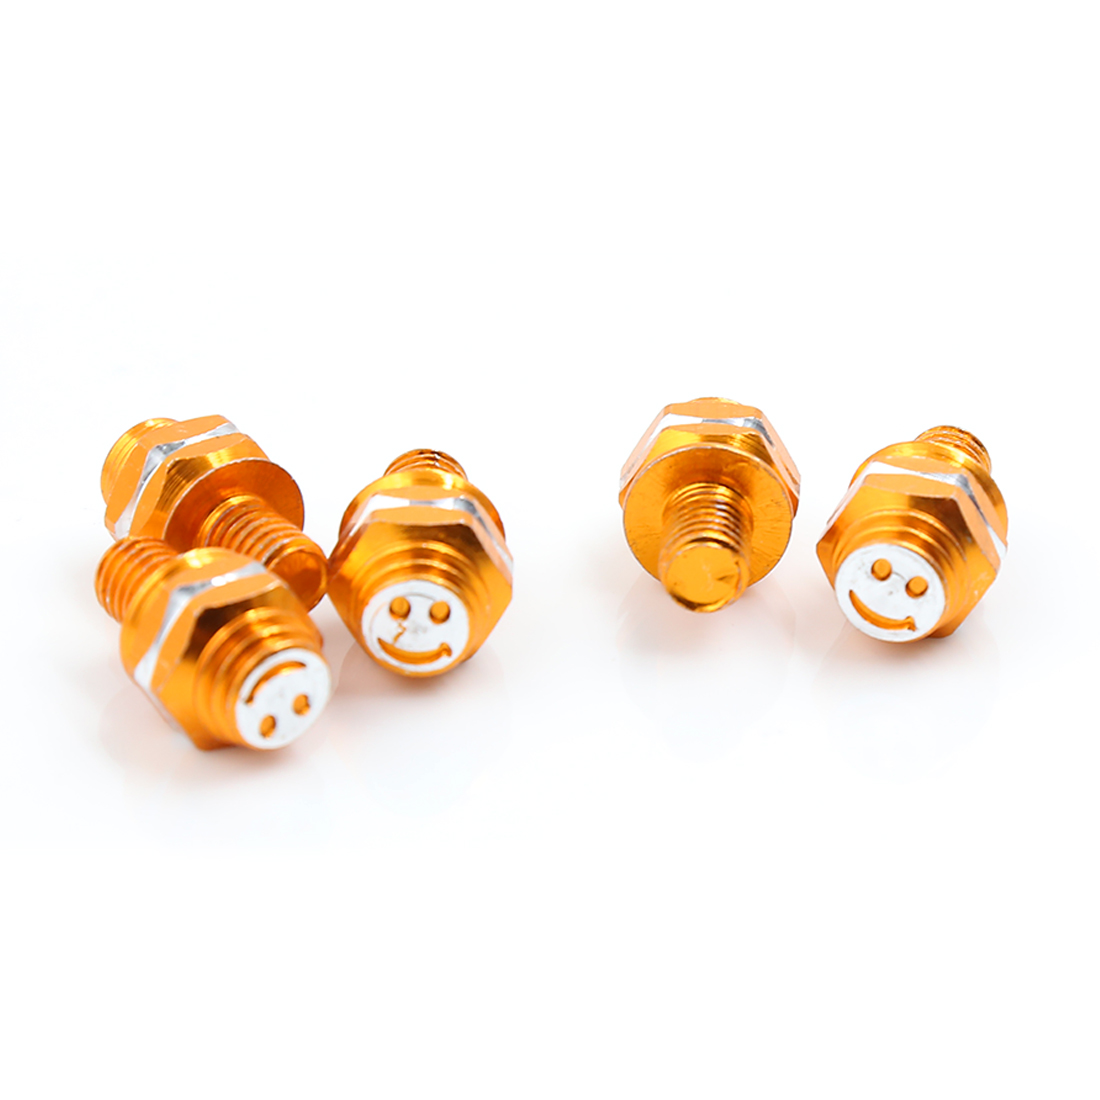 5pcs 8mm Thread Dia Smile Face Pattern License Plate Frame Bolt Screws Gold Tone